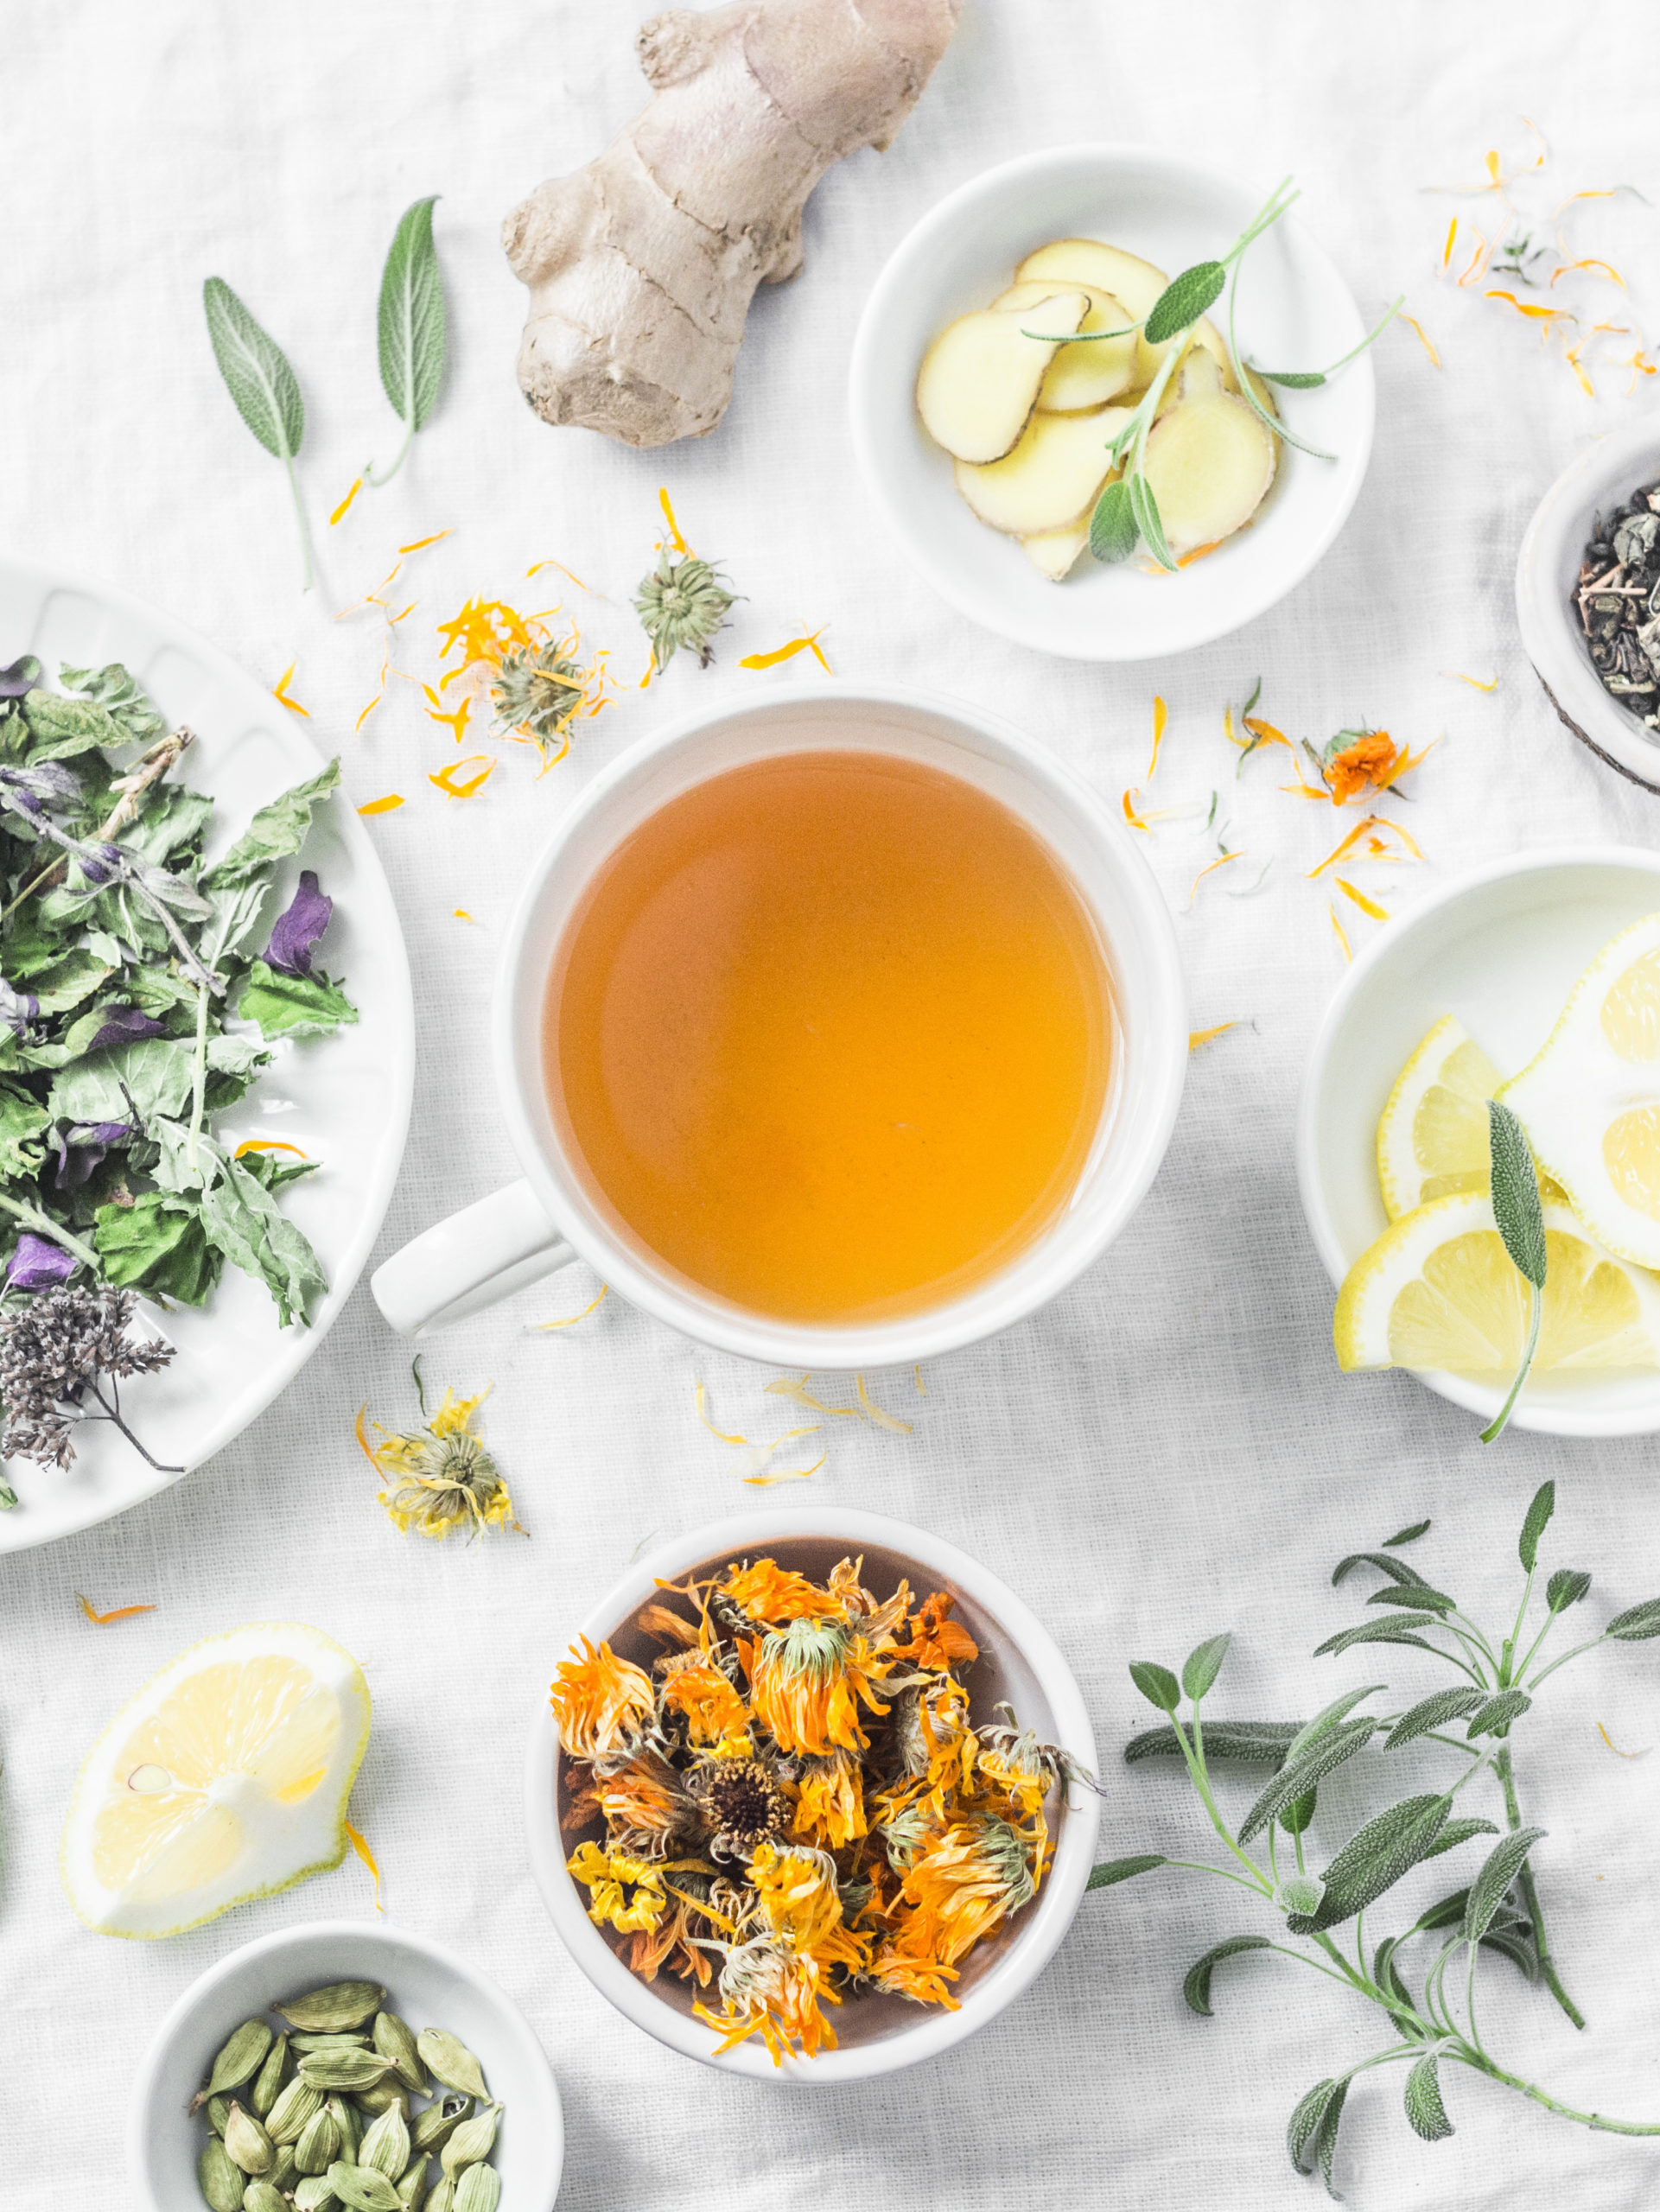 Herbal detox antioxidant tea and the ingredients for cooking on a light background, top view. Herbal homeopathic recipe